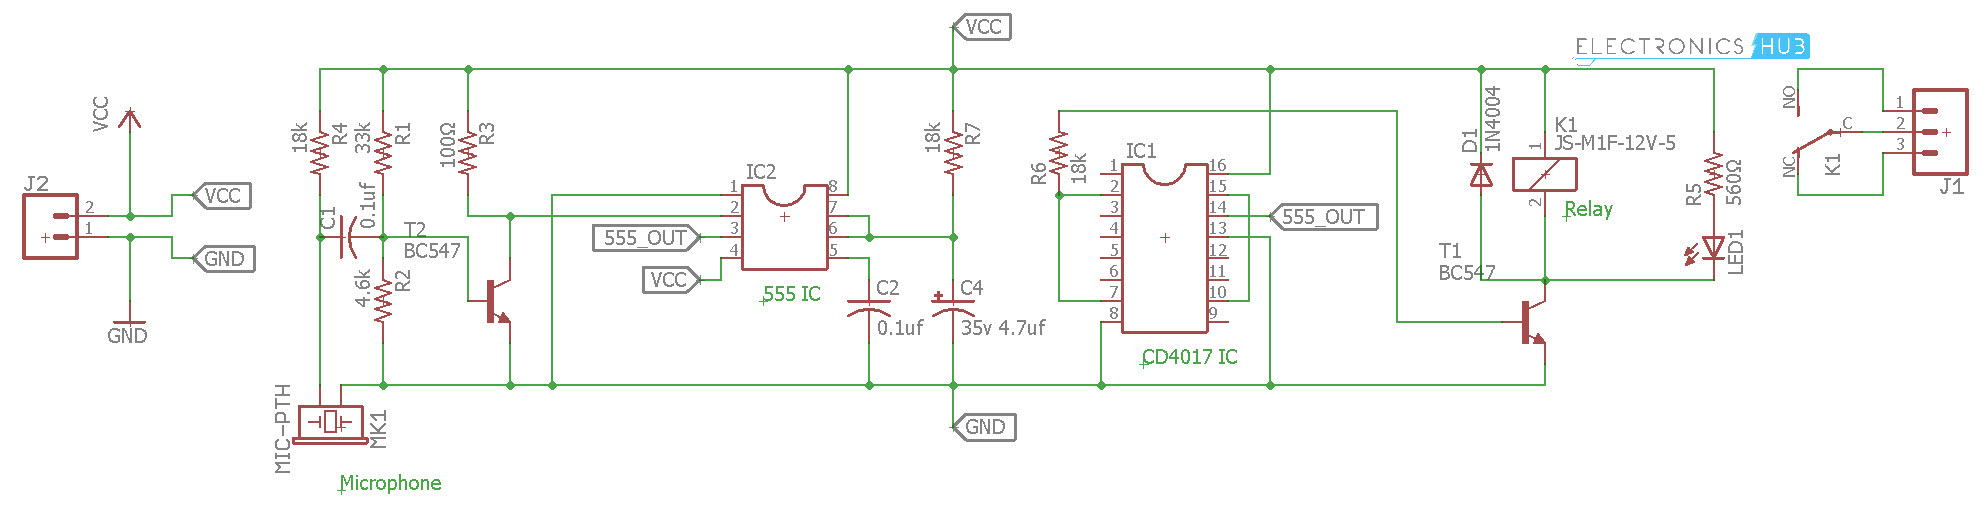 Clap Switch Circuit For Devices Working And Applications Miniature Battery Is Used To Power The Two Transistors T1 Using 555 4017 Diagram